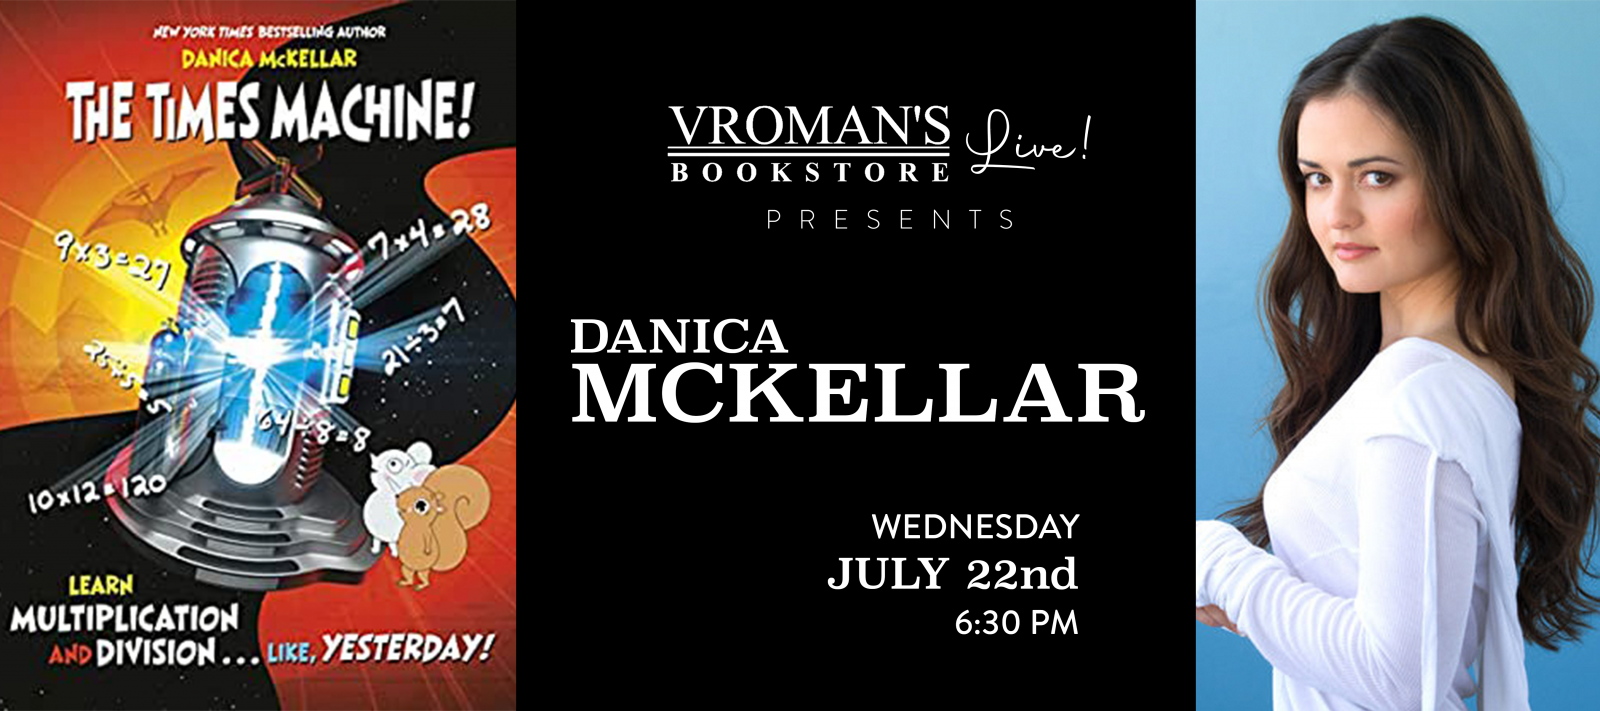 Vroman's Live presents Danica McKellar  on Wednesday July 22nd at 6:30pm